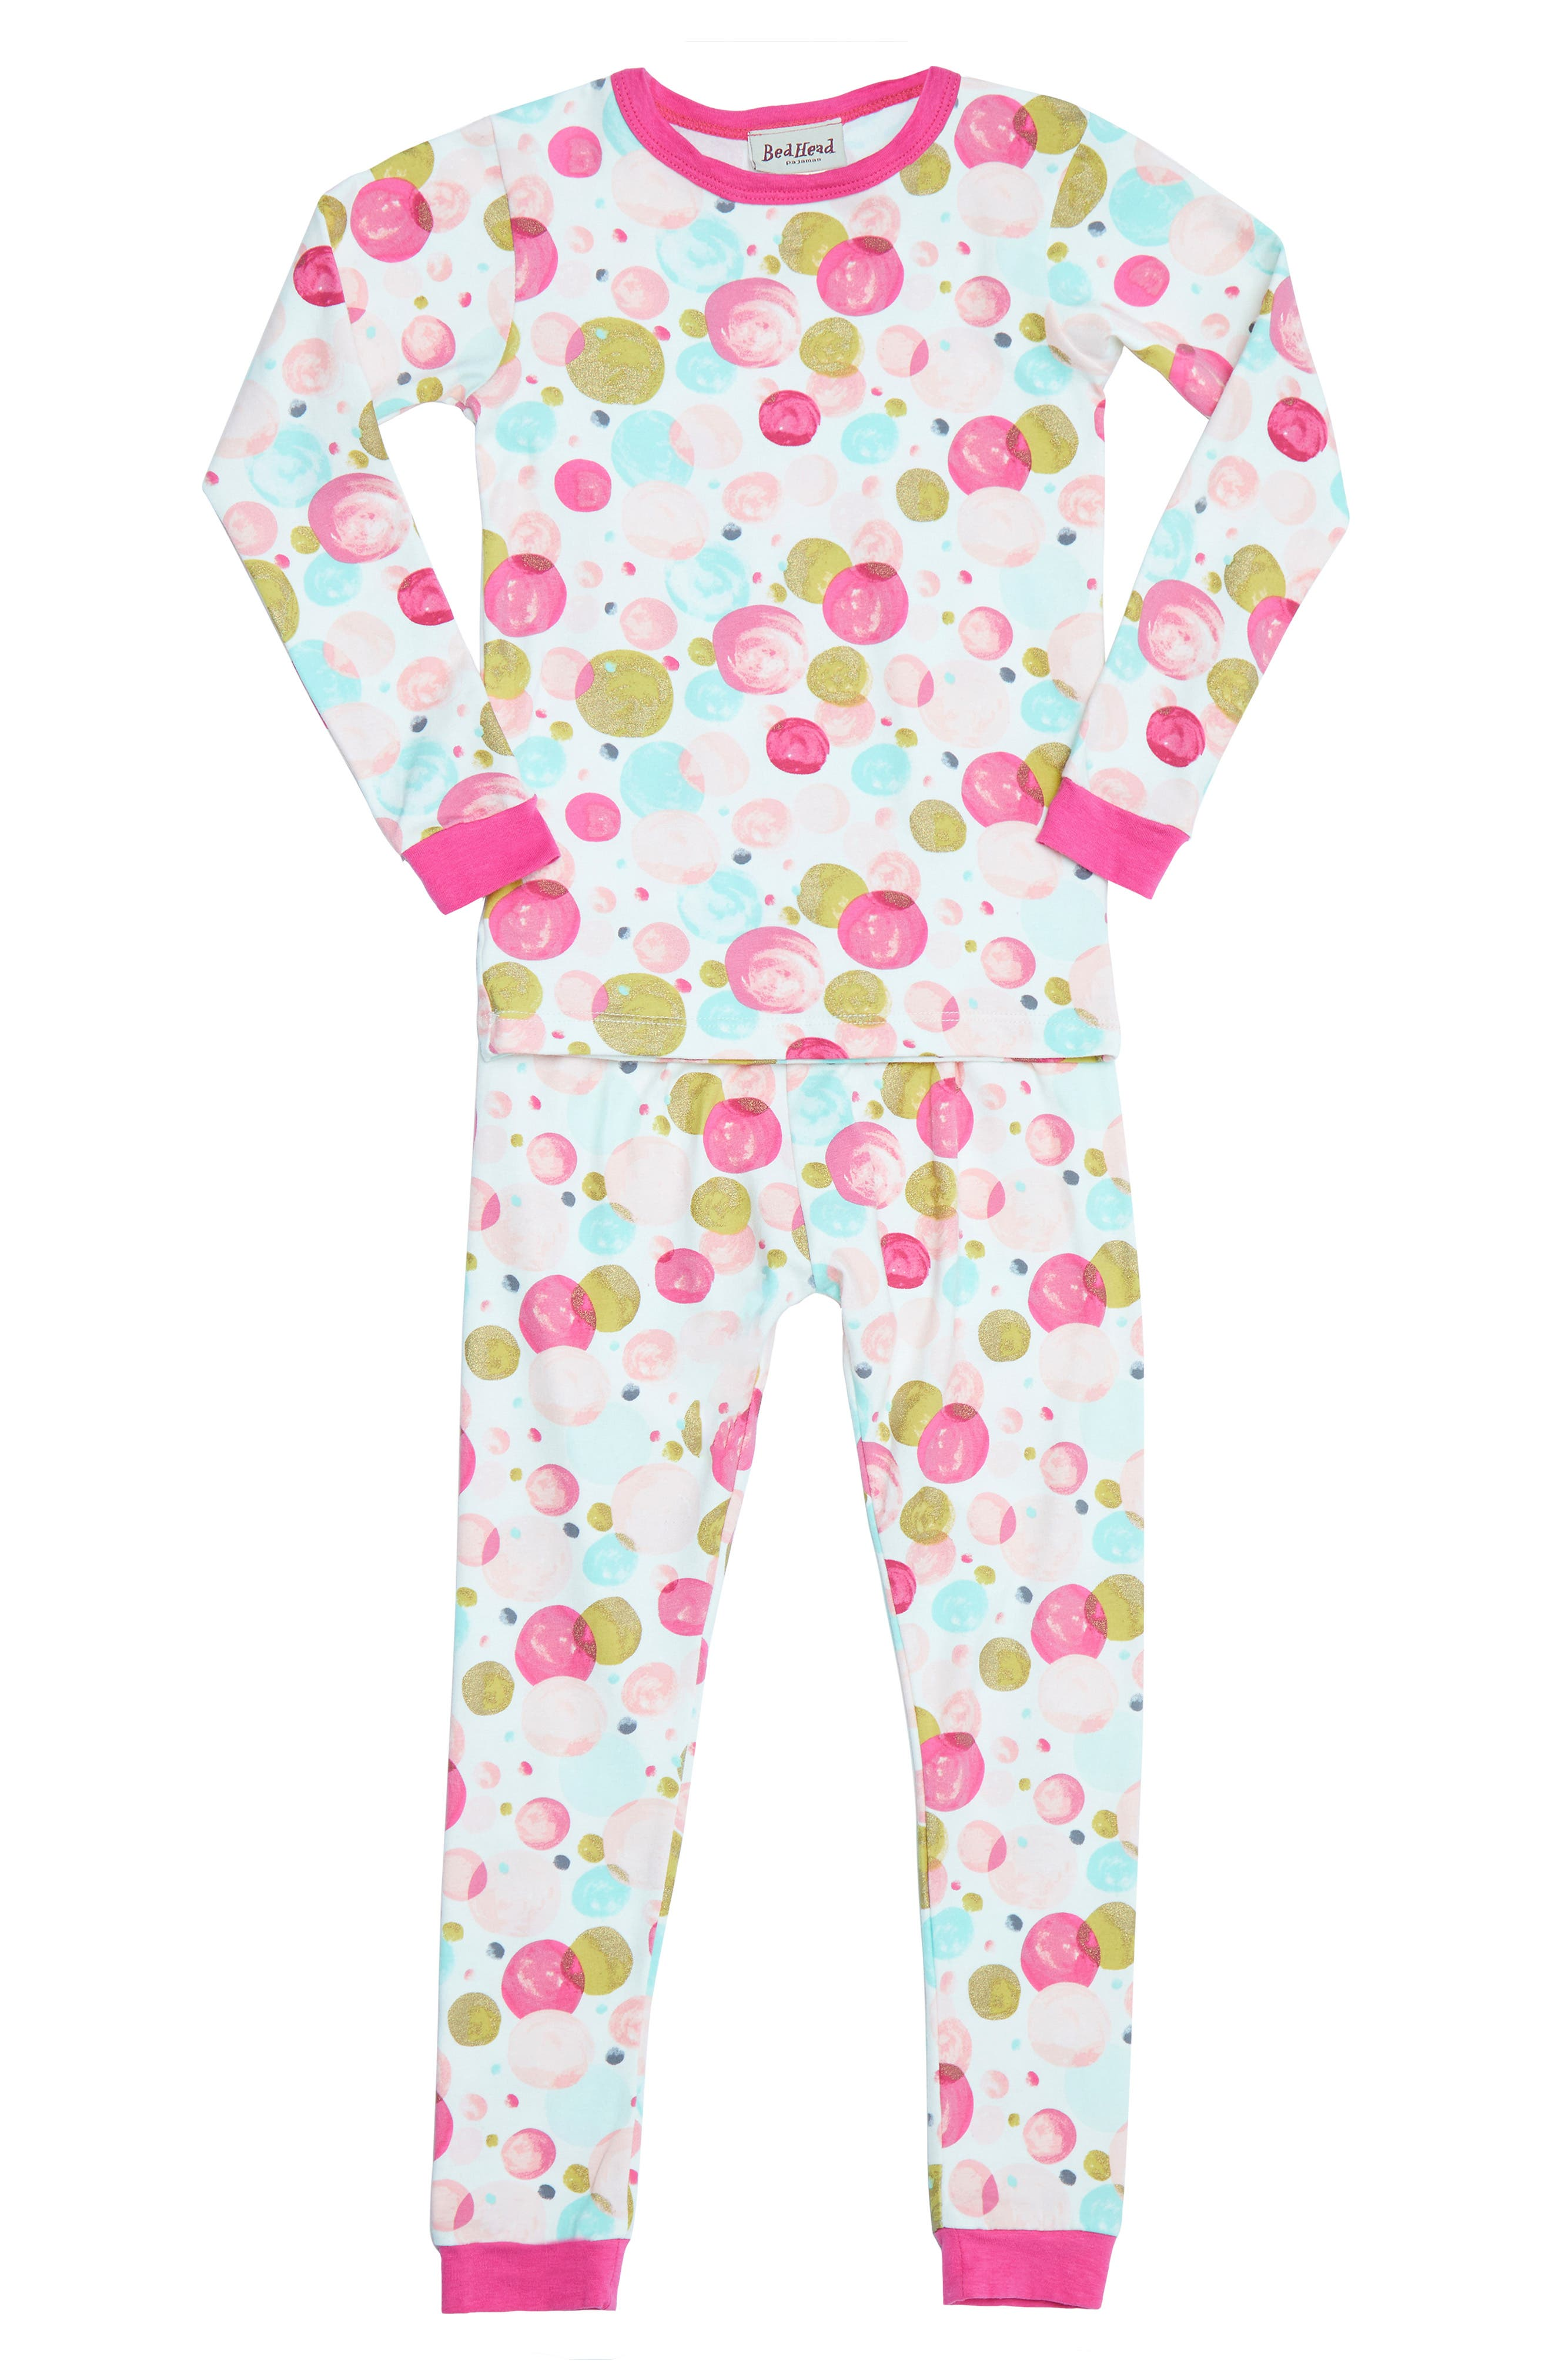 BEDHEAD Print Fitted Two-Piece Pajamas, Main, color, 650